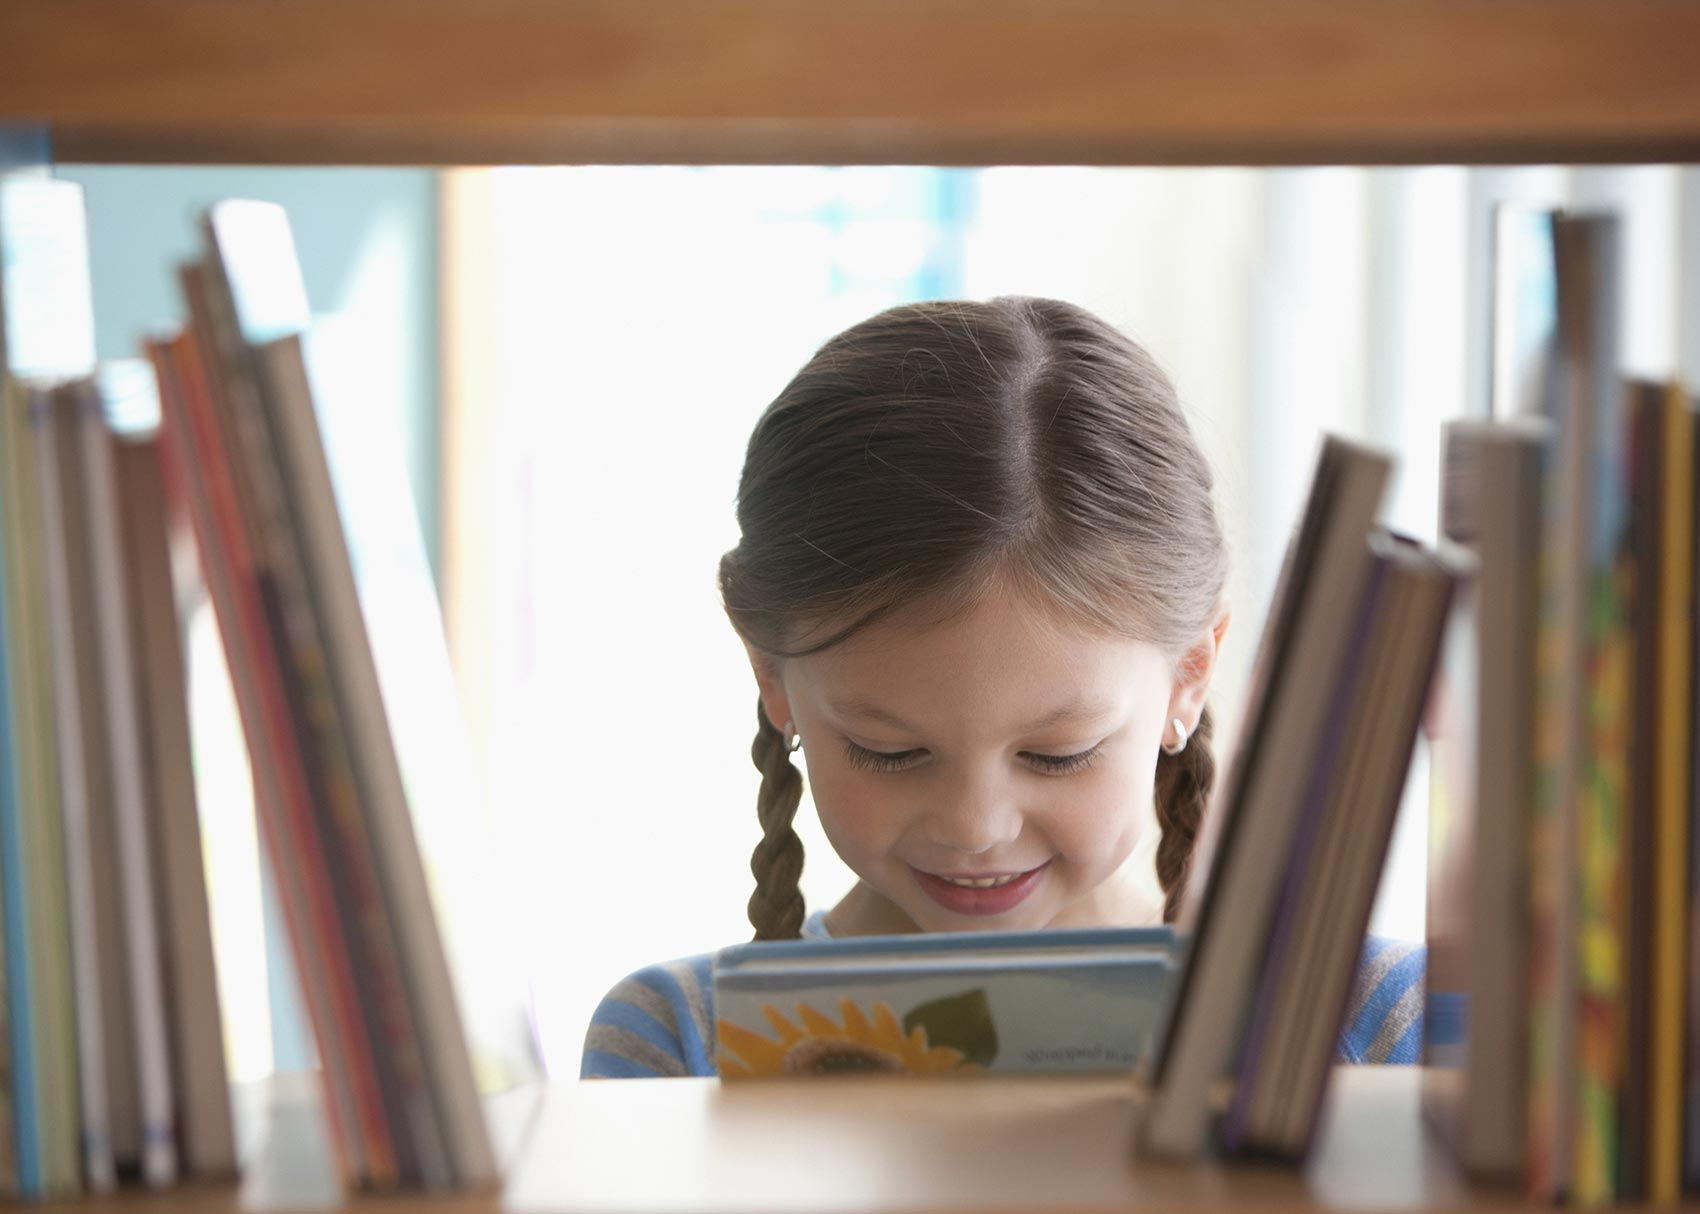 Get To Know Your Library A Scavenger Hunt For Kids